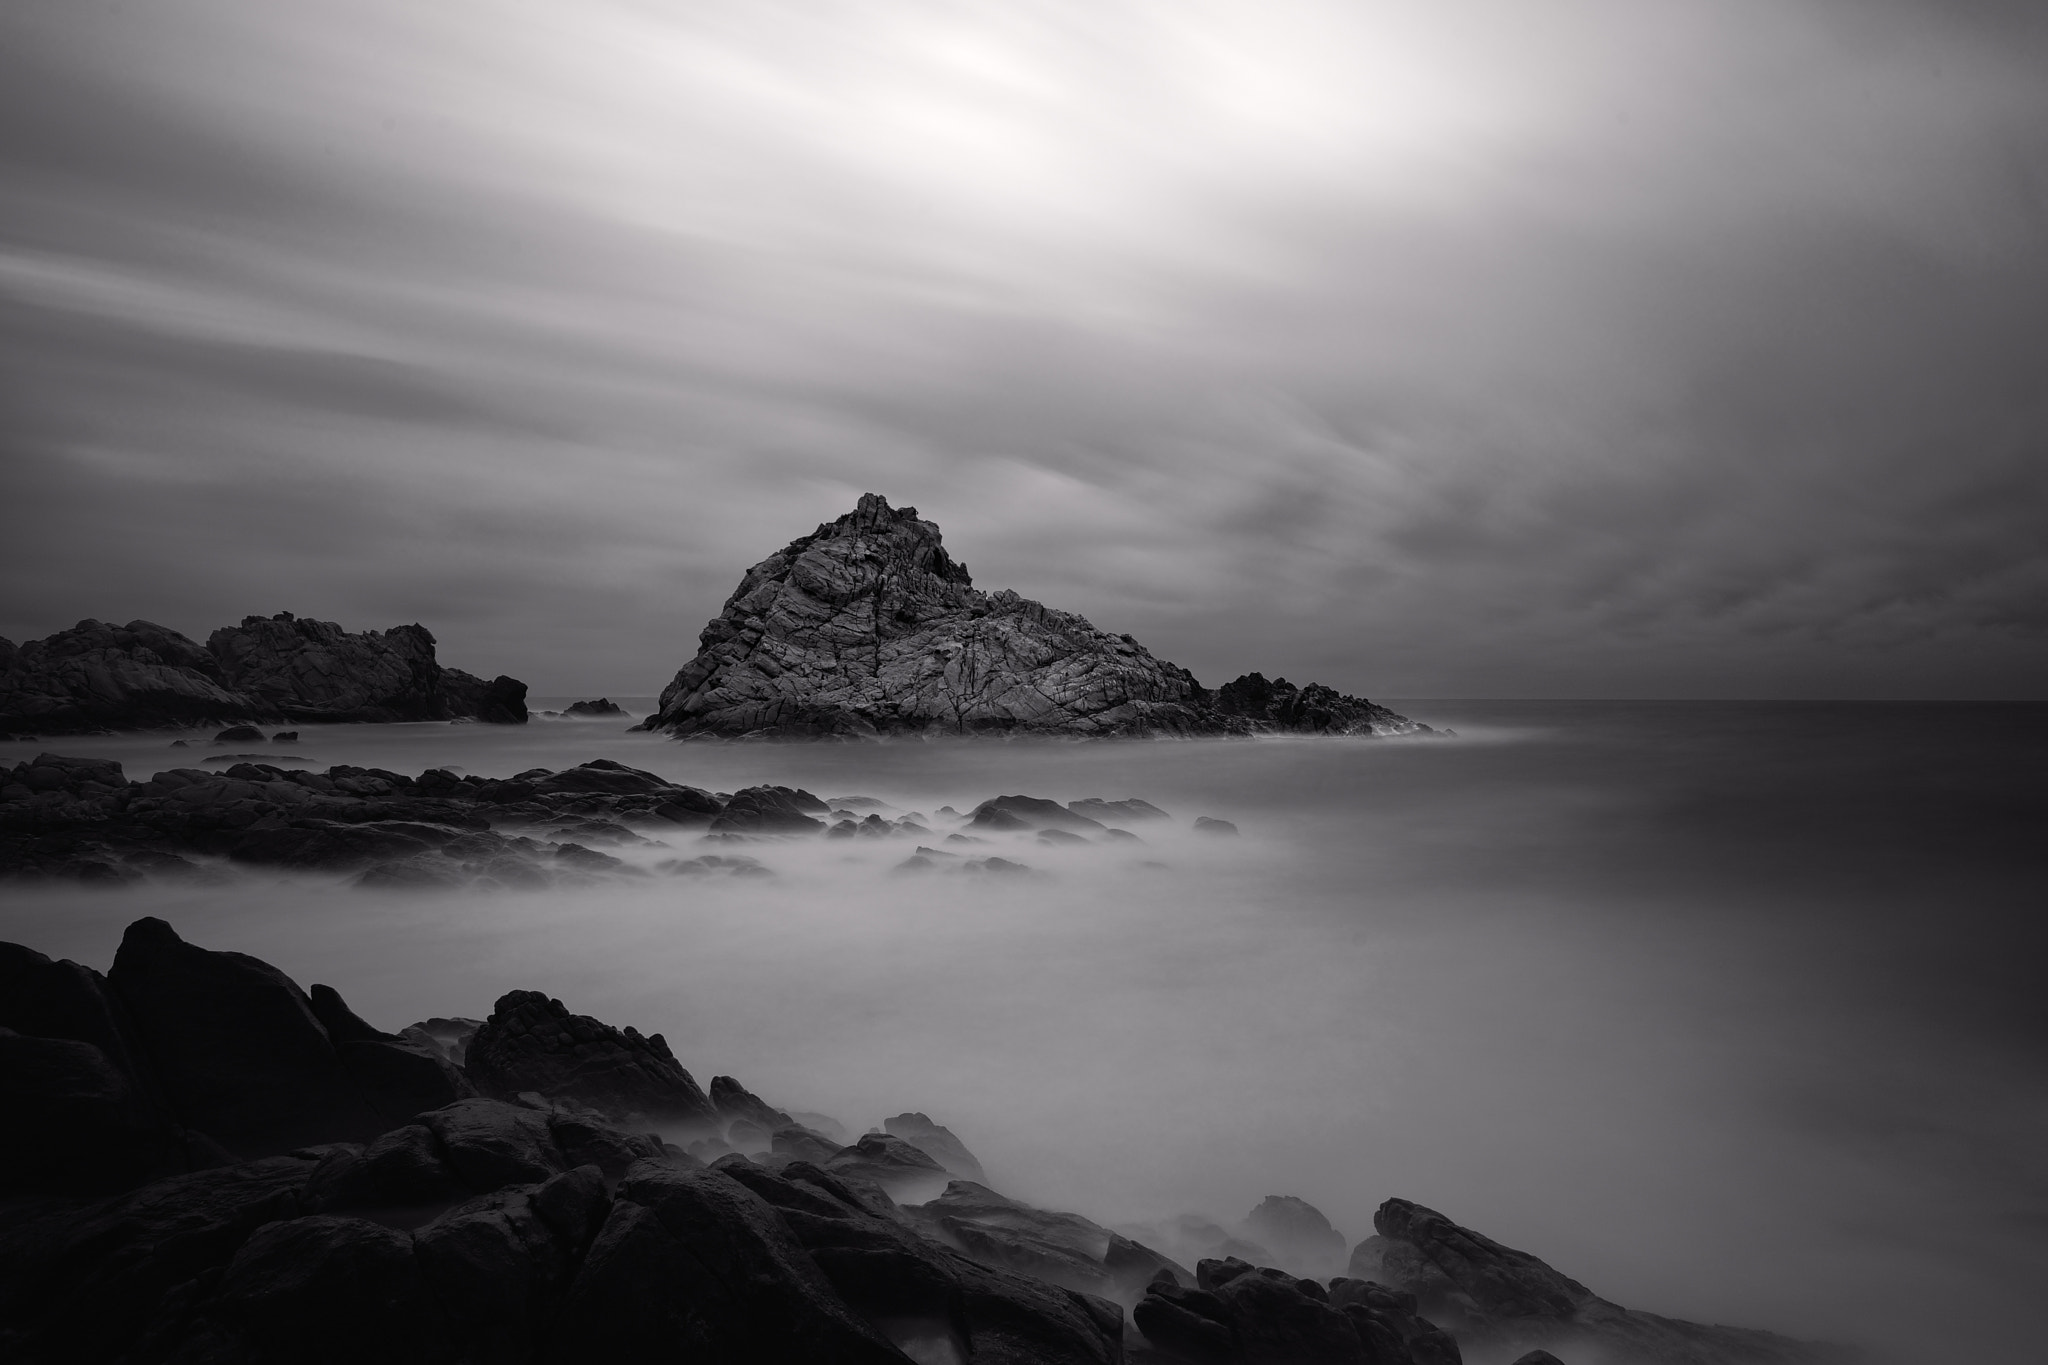 Photograph Sugar Loaf rock by Peter Hodgson on 500px